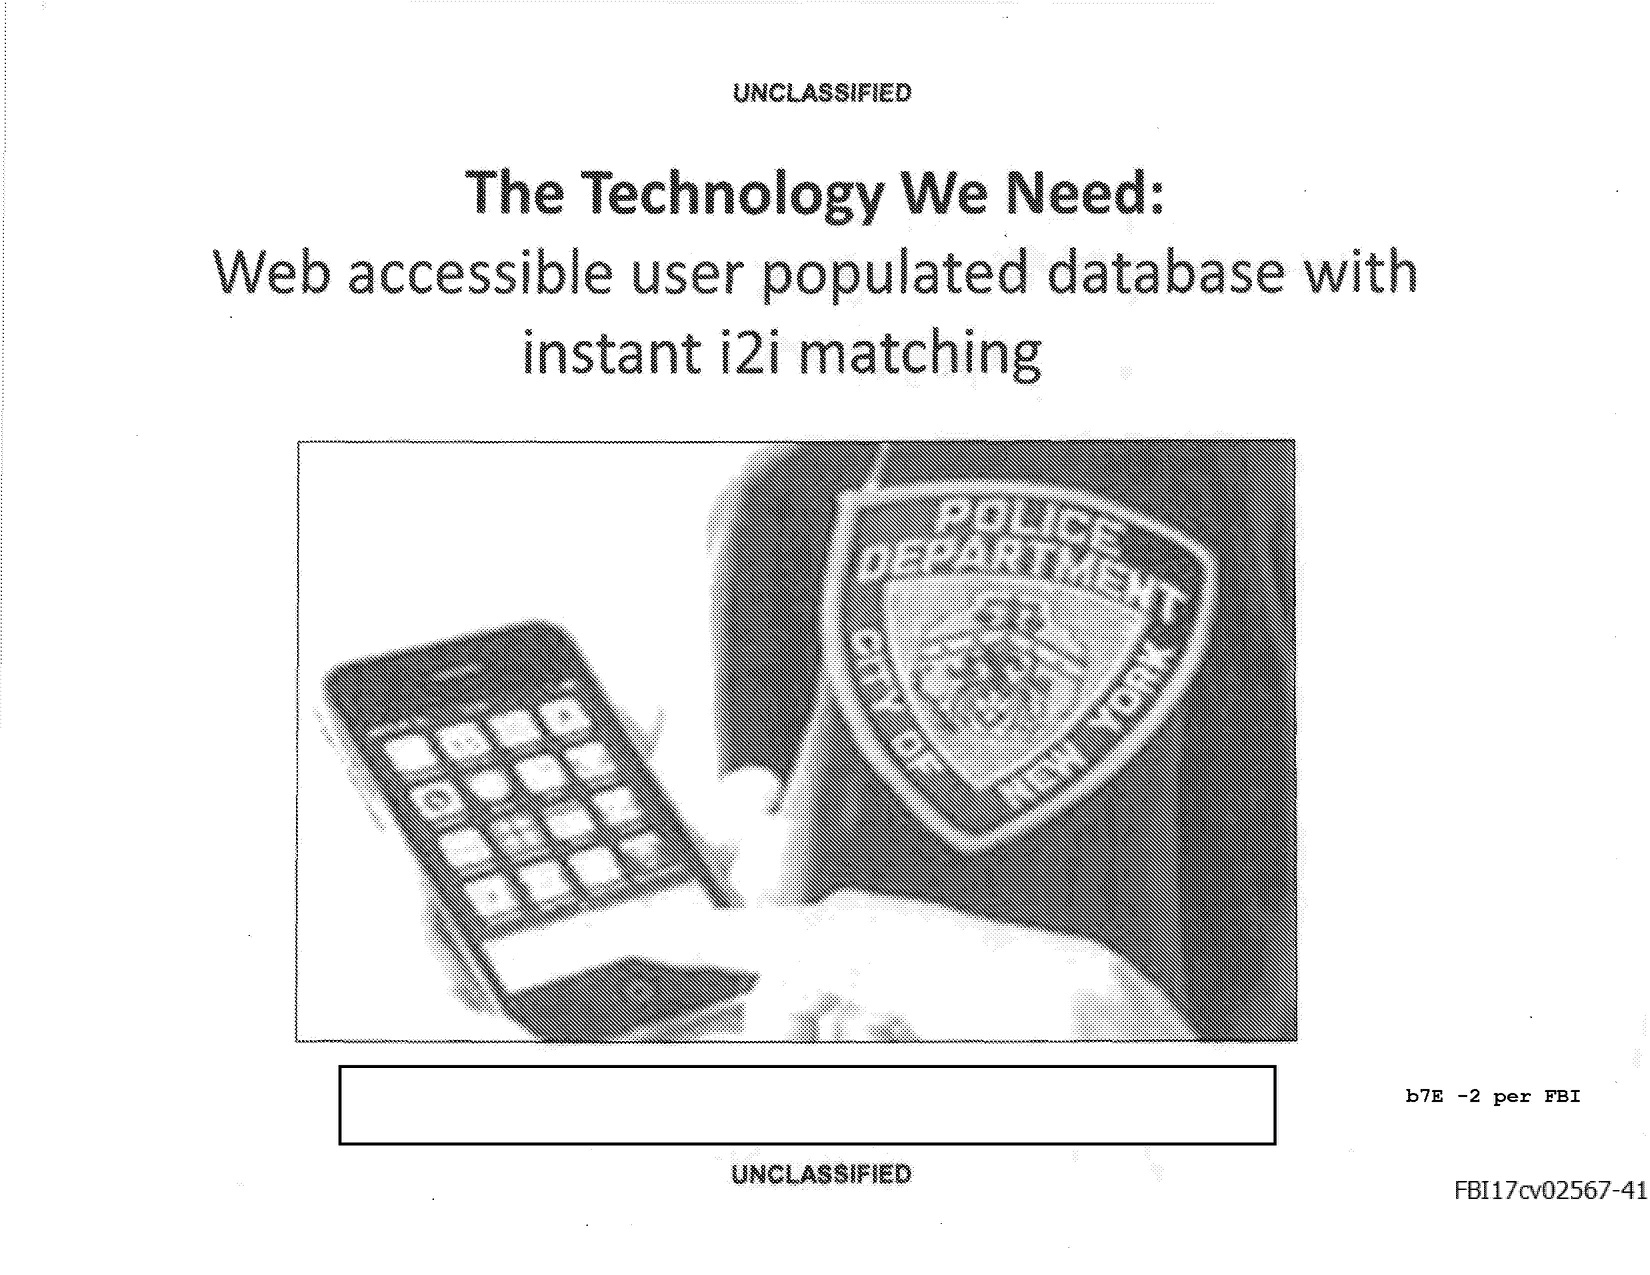 Fbi Wish List An App That Can Recognize The Meaning Of Ideas And Designs